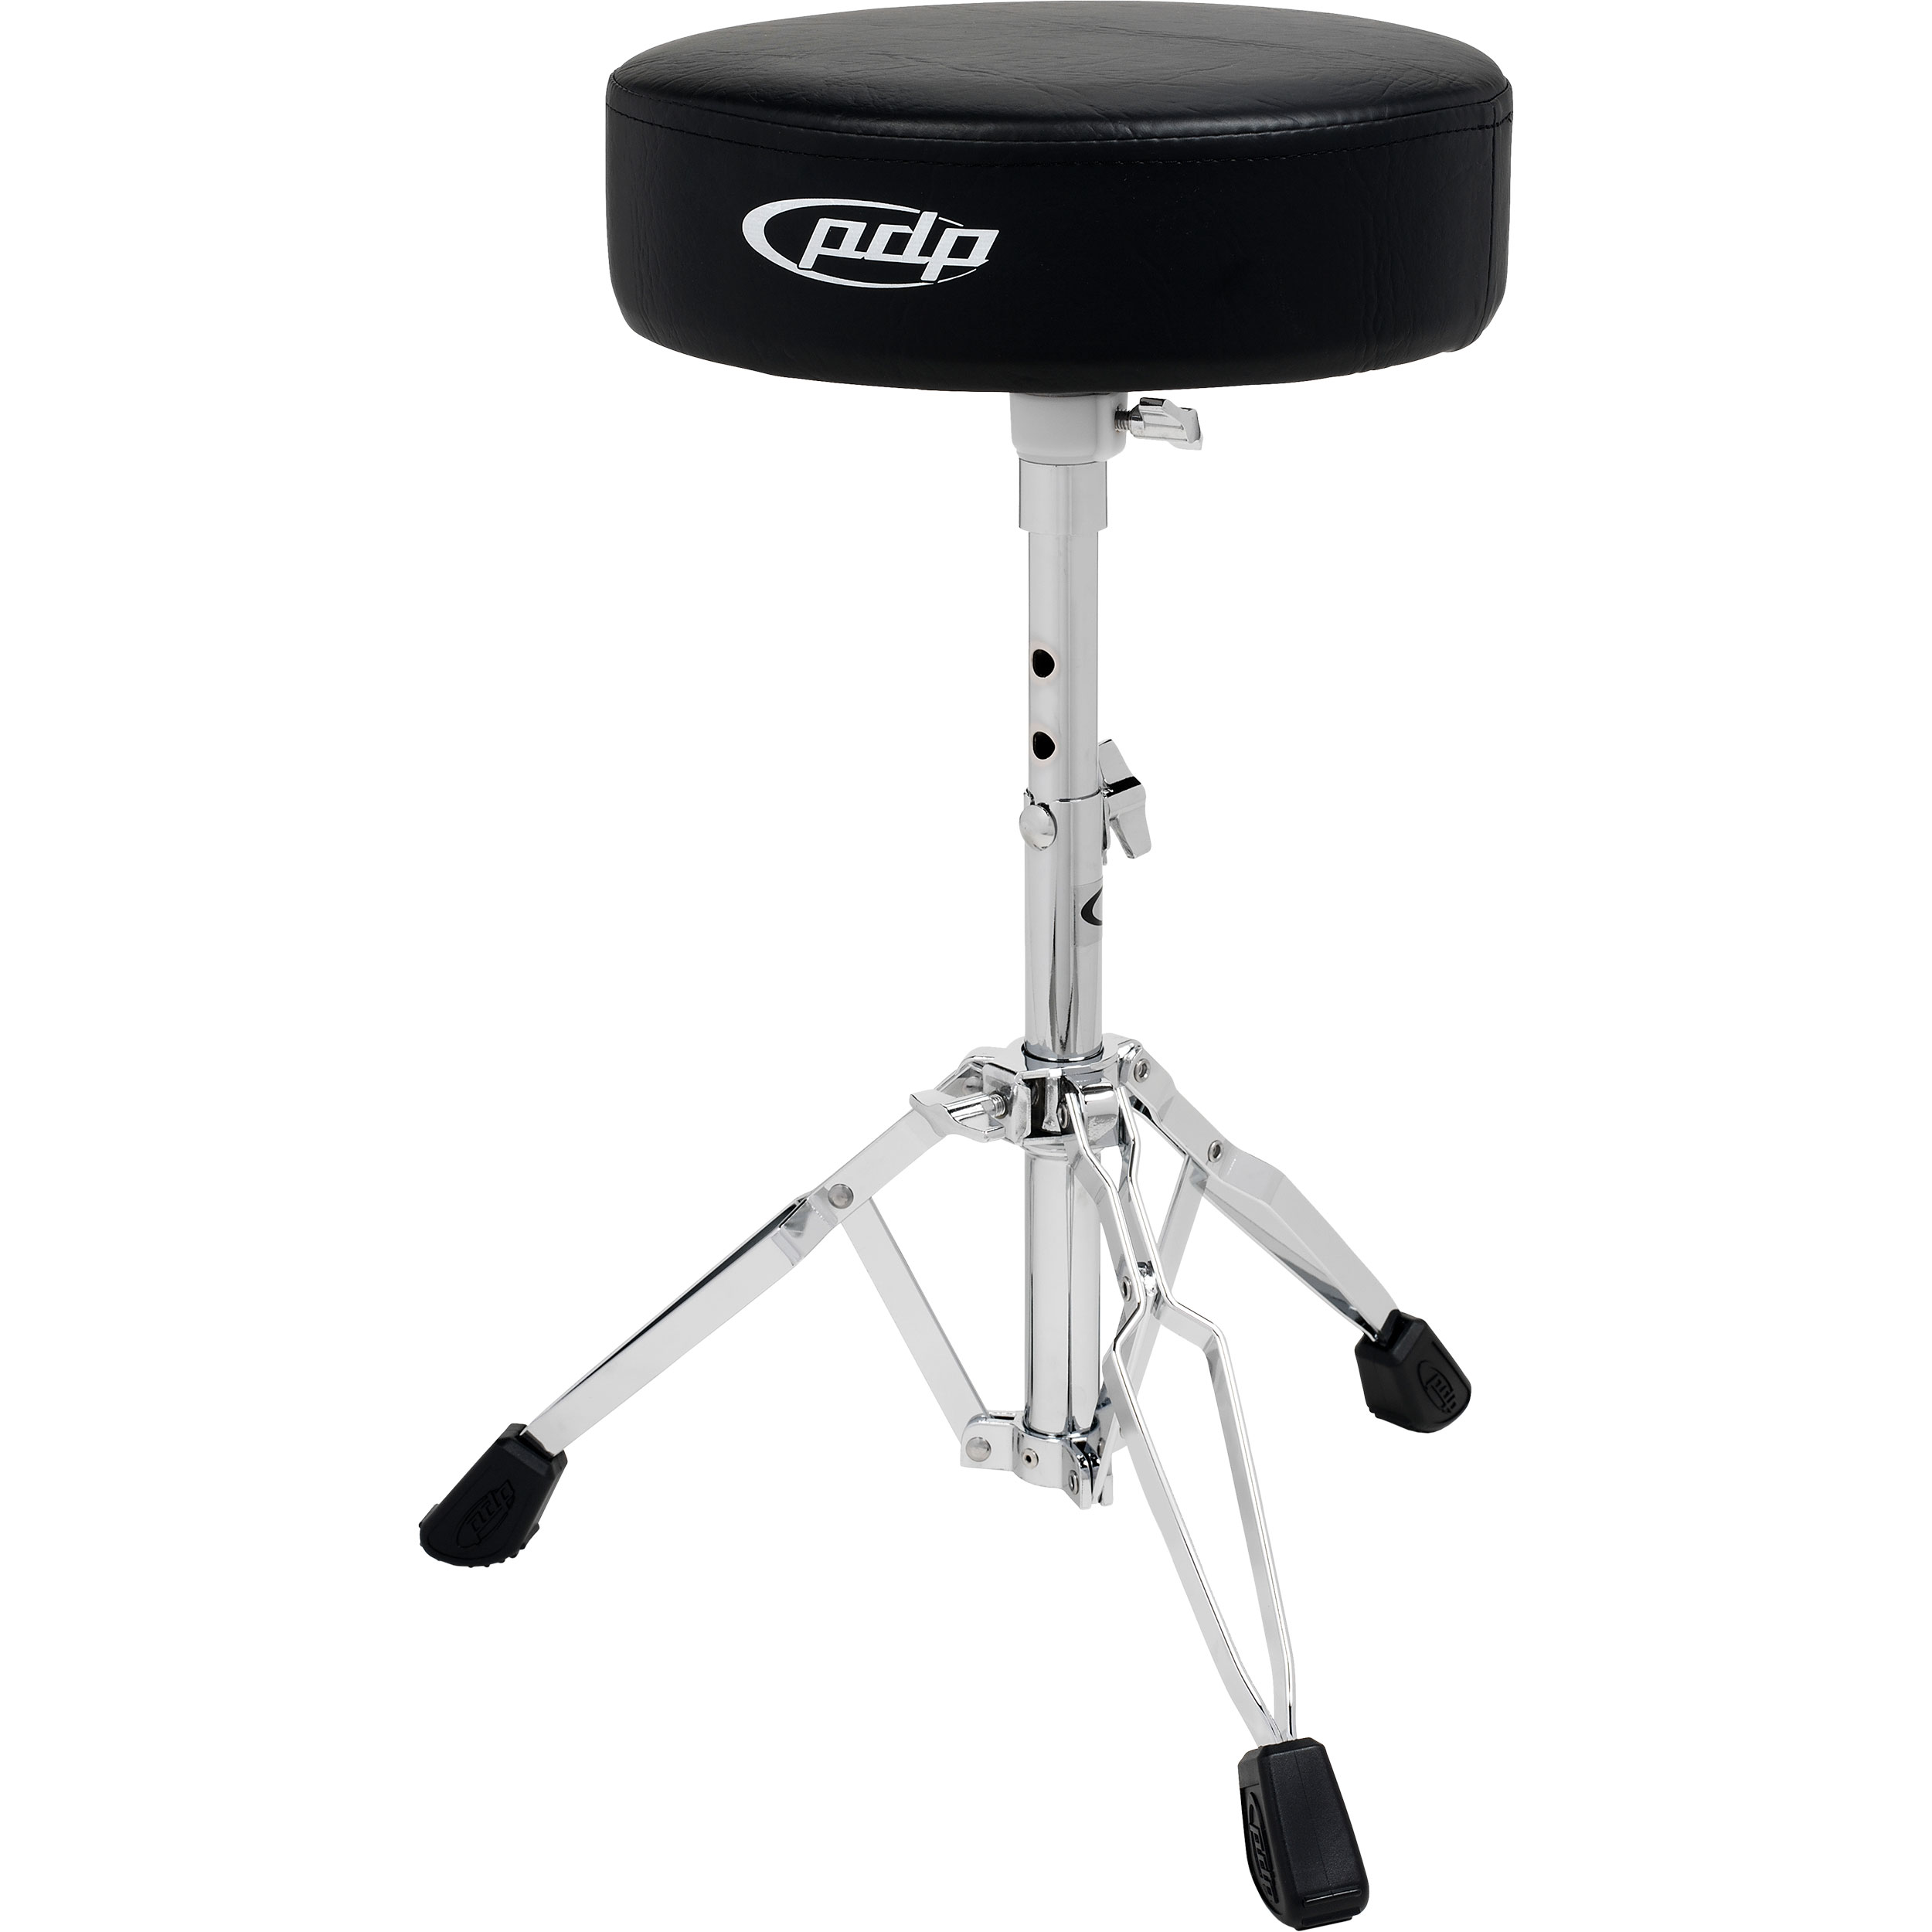 PDP 700 Series Round Drum Throne